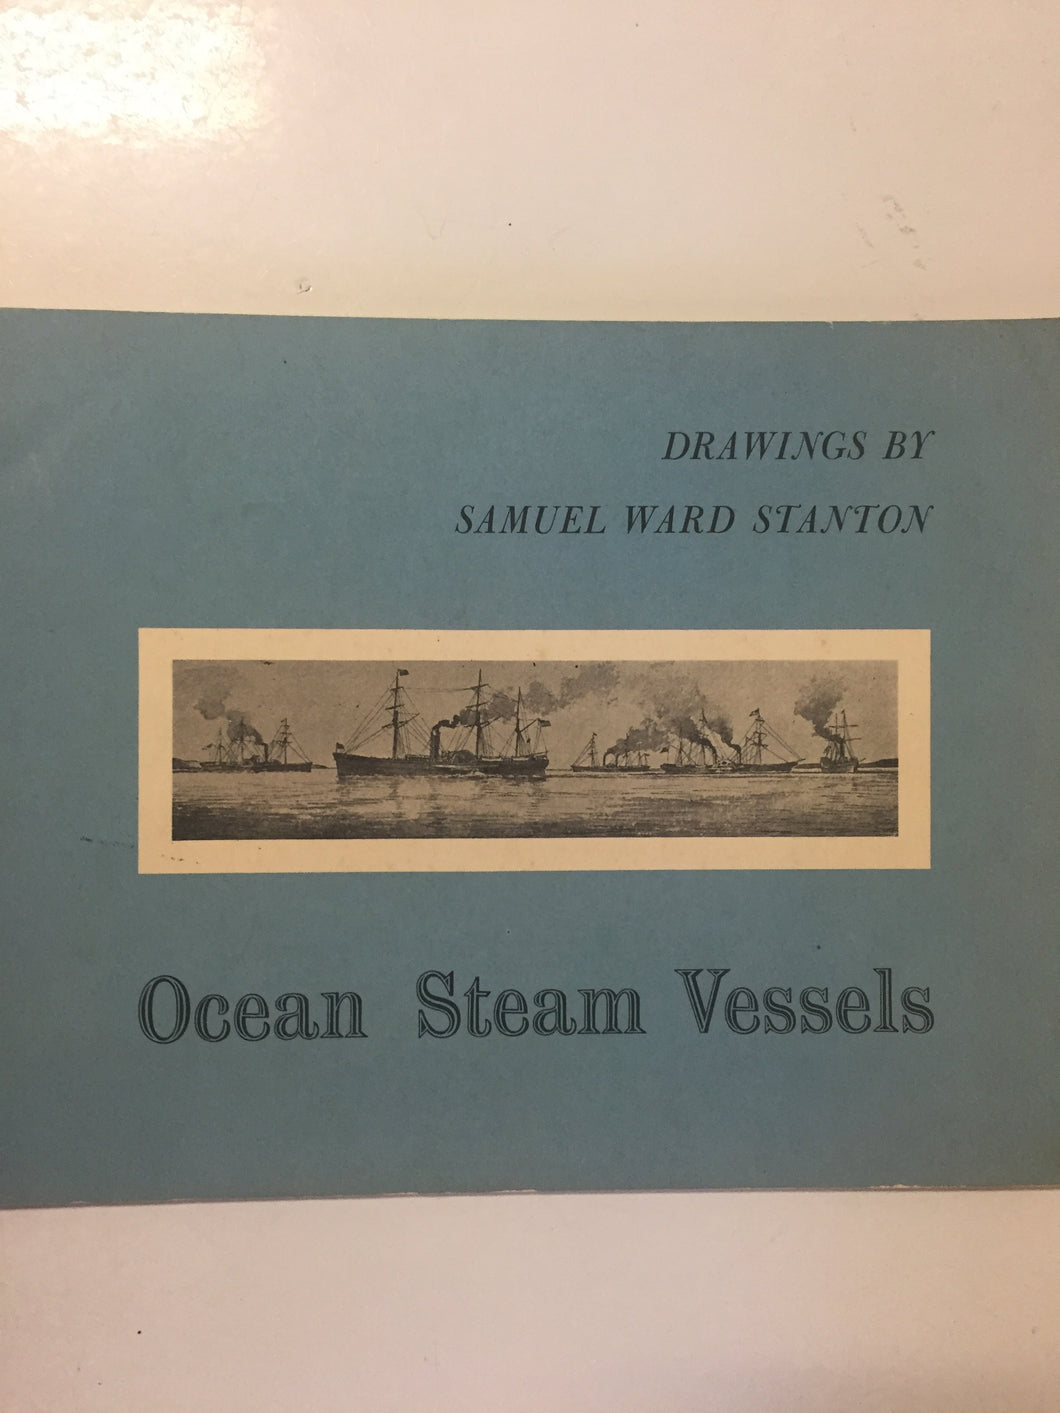 Ocean Steam Vessels Drawings By Samuel Ward Stanton - Slick Cat Books